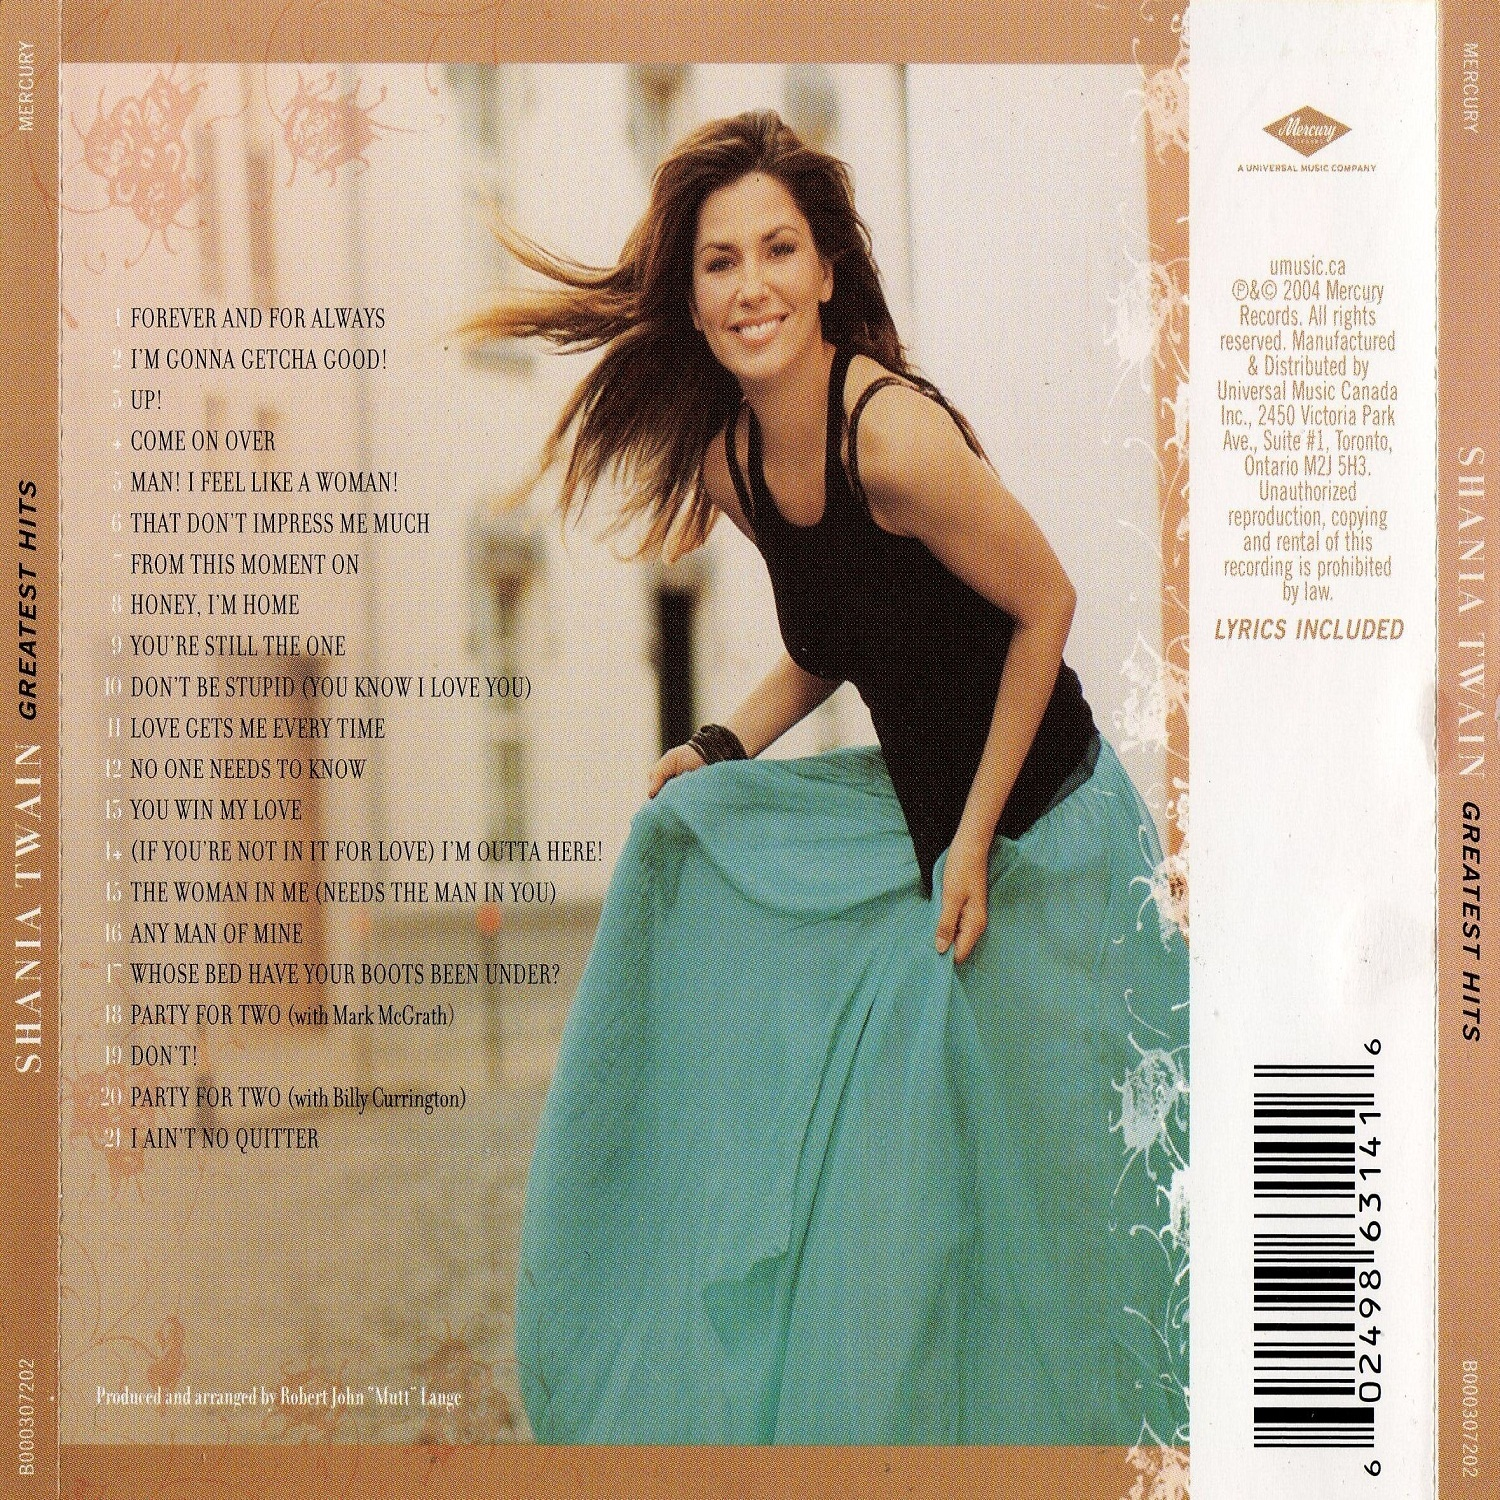 http://3.bp.blogspot.com/-v-ft6KREuP8/UEtSH1FG0zI/AAAAAAAABEI/ZVo-IuDDMHc/s1600/shania_twain_greatest_hits_cover-back.jpg